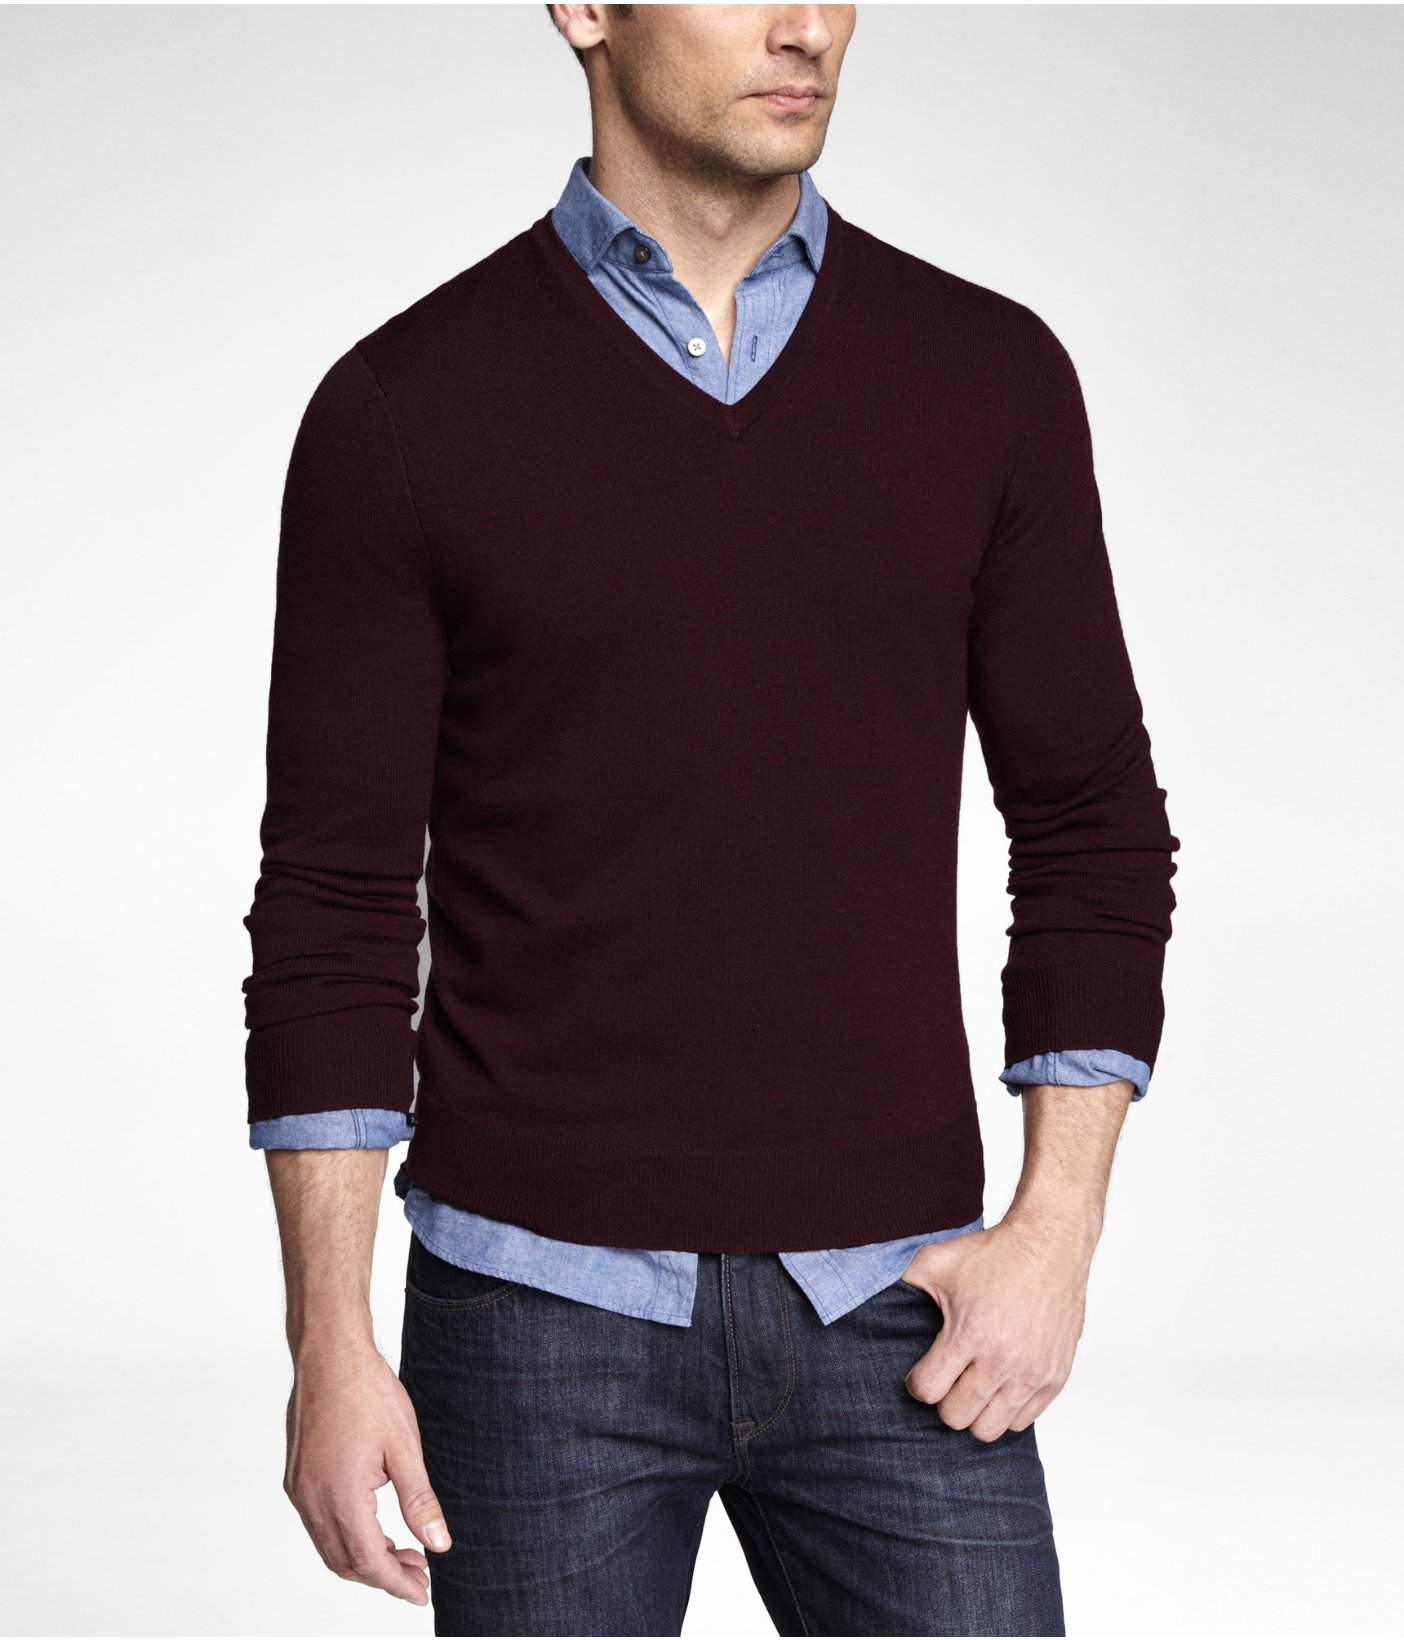 Sweater Shop has been the home of quality Irish woolen knitwear for over 20 years. A unique selection of men's, women's and children's authentic wool apparel.